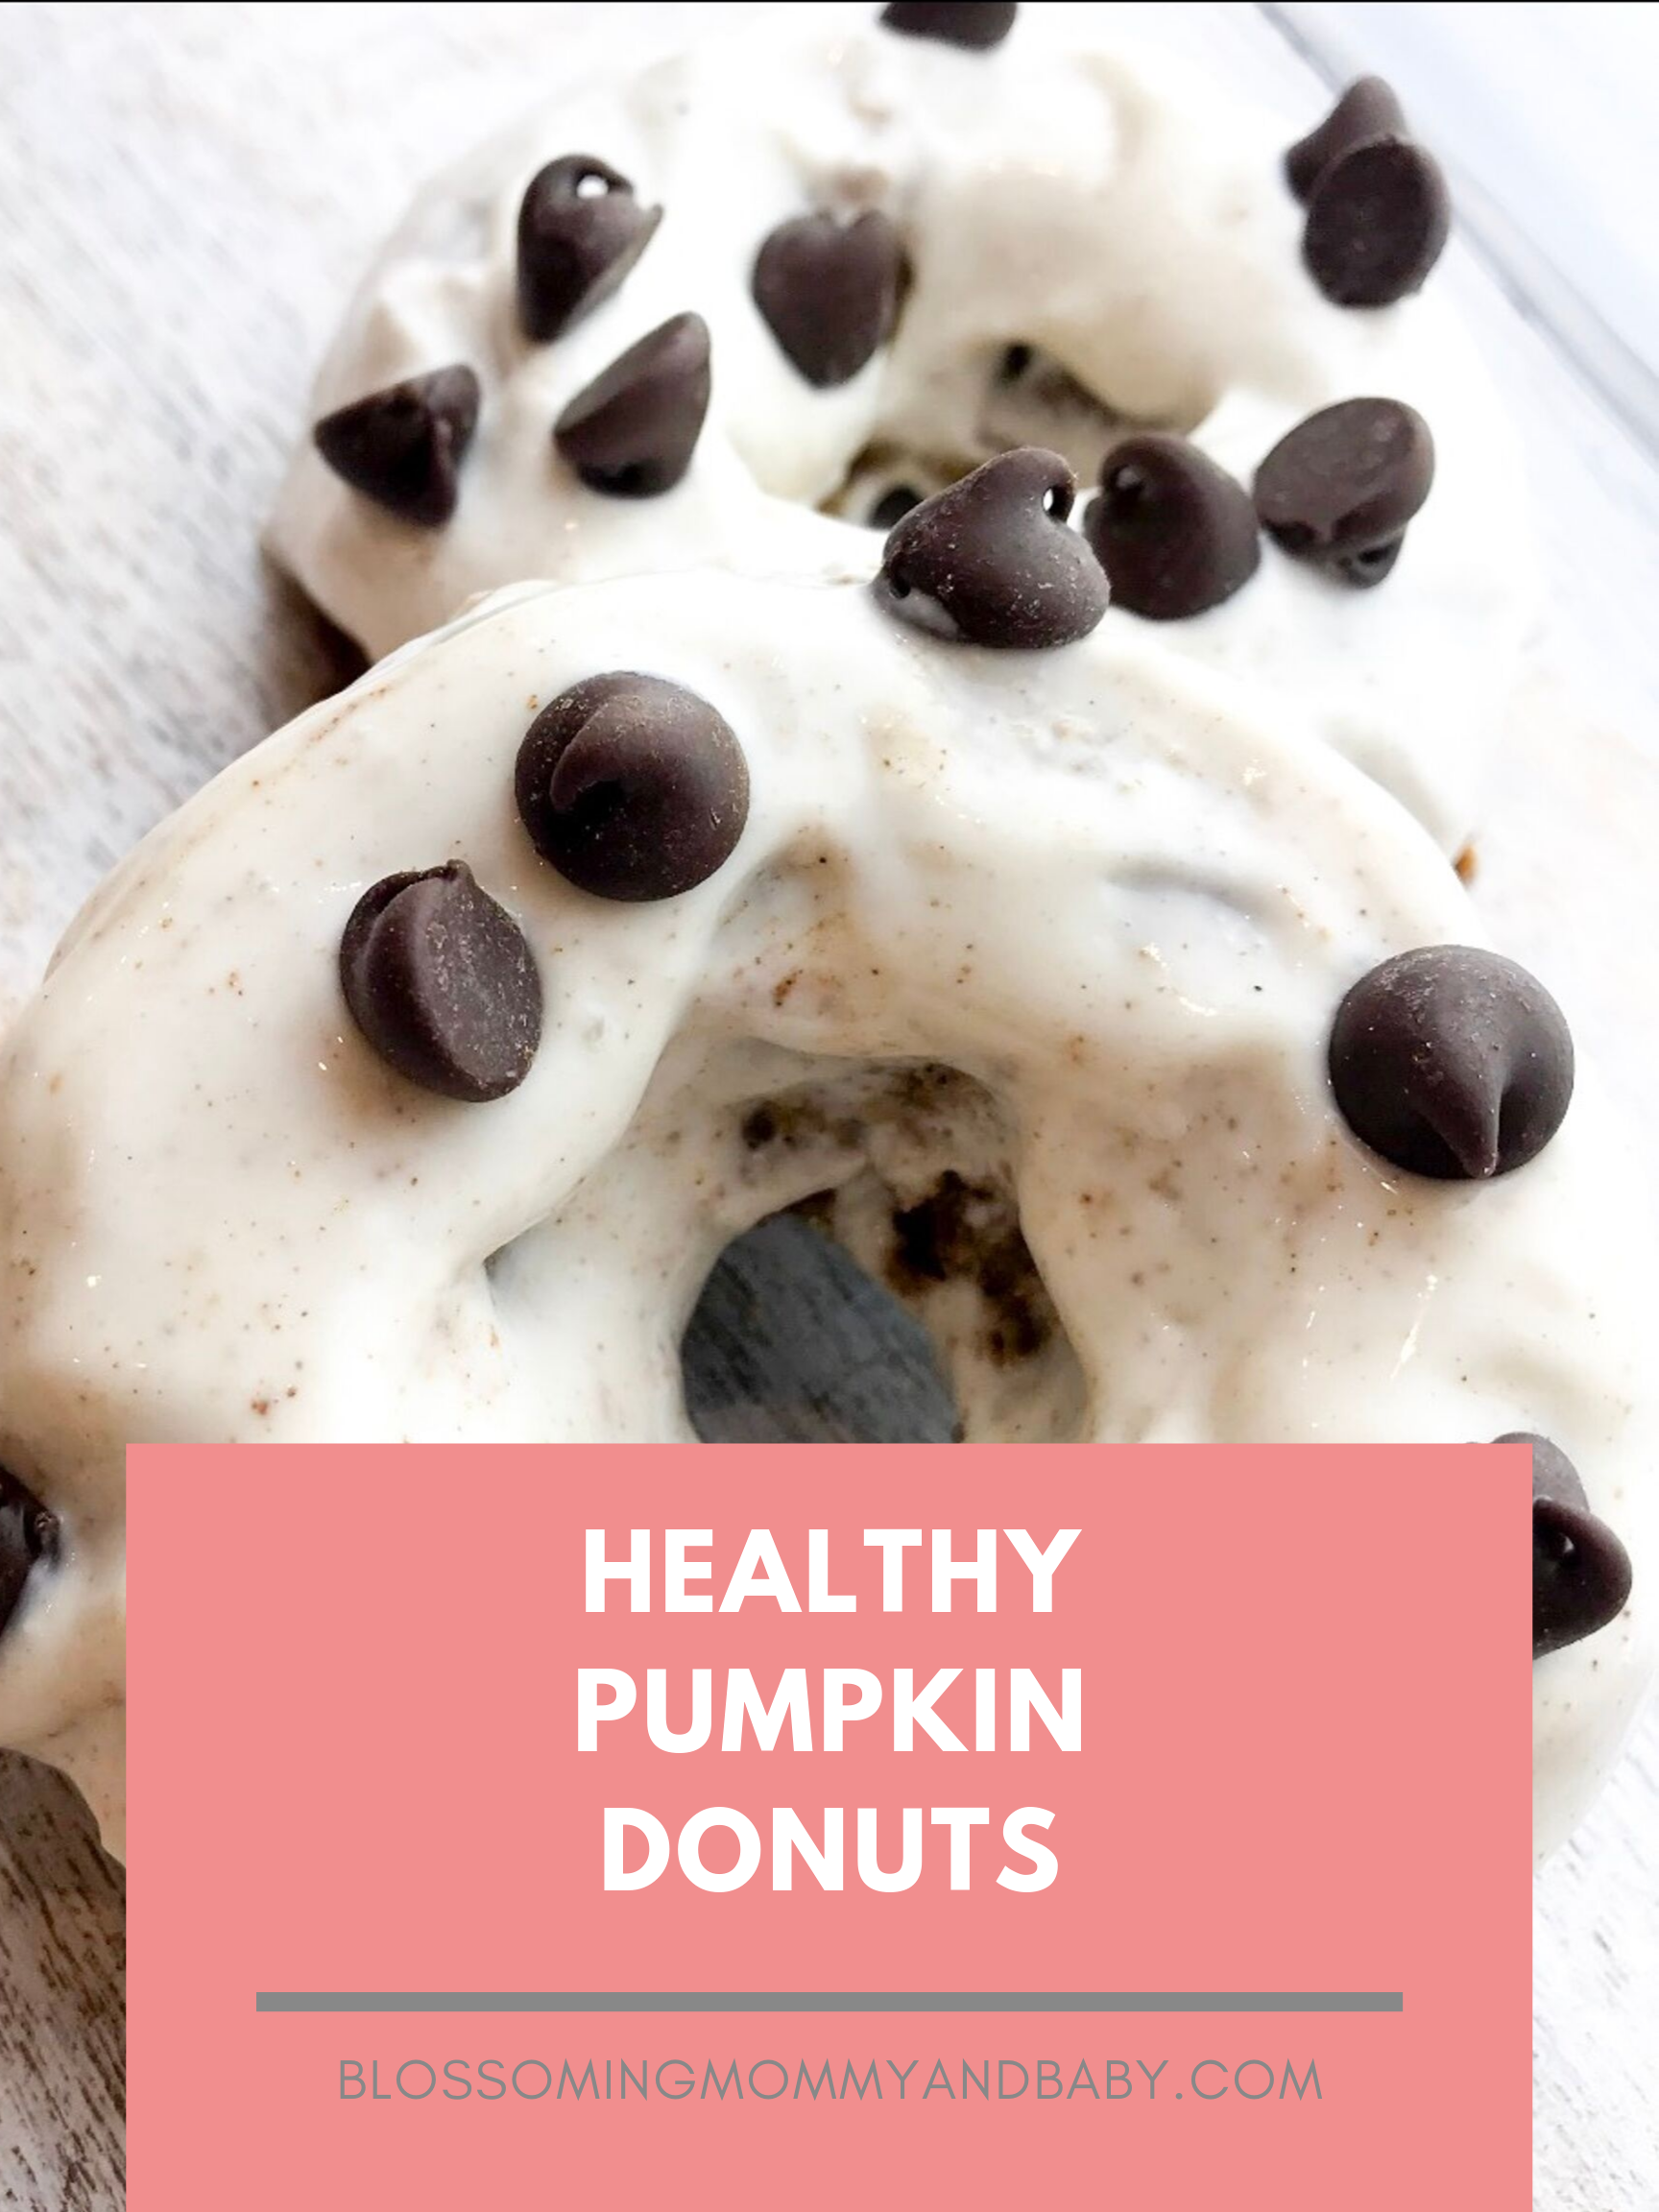 HEALTHY PUMPKIN DONUTS | Blossoming Mommy and Baby